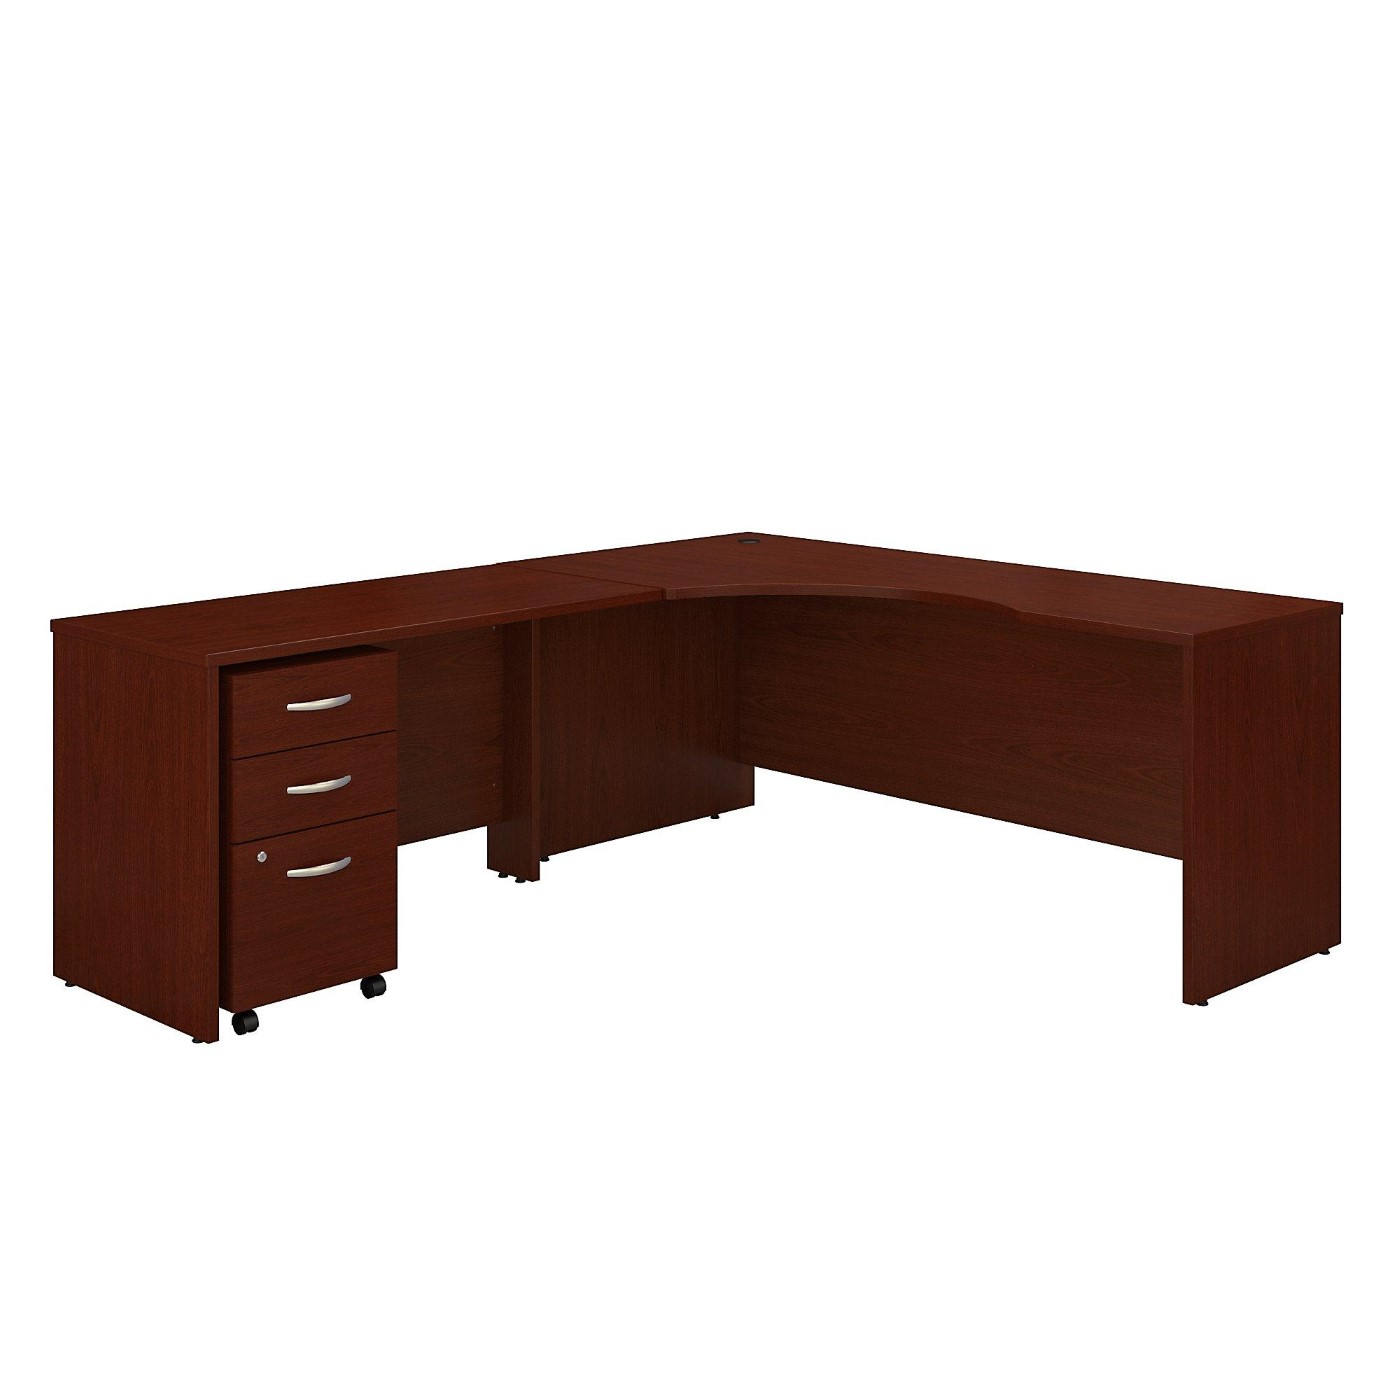 <font color=#c60><b>BUSH BUSINESS FURNITURE SERIES C 72W RIGHT HANDED CORNER DESK WITH 48W RETURN AND MOBILE FILE CABINET. FREE SHIPPING</font></b></font></b>